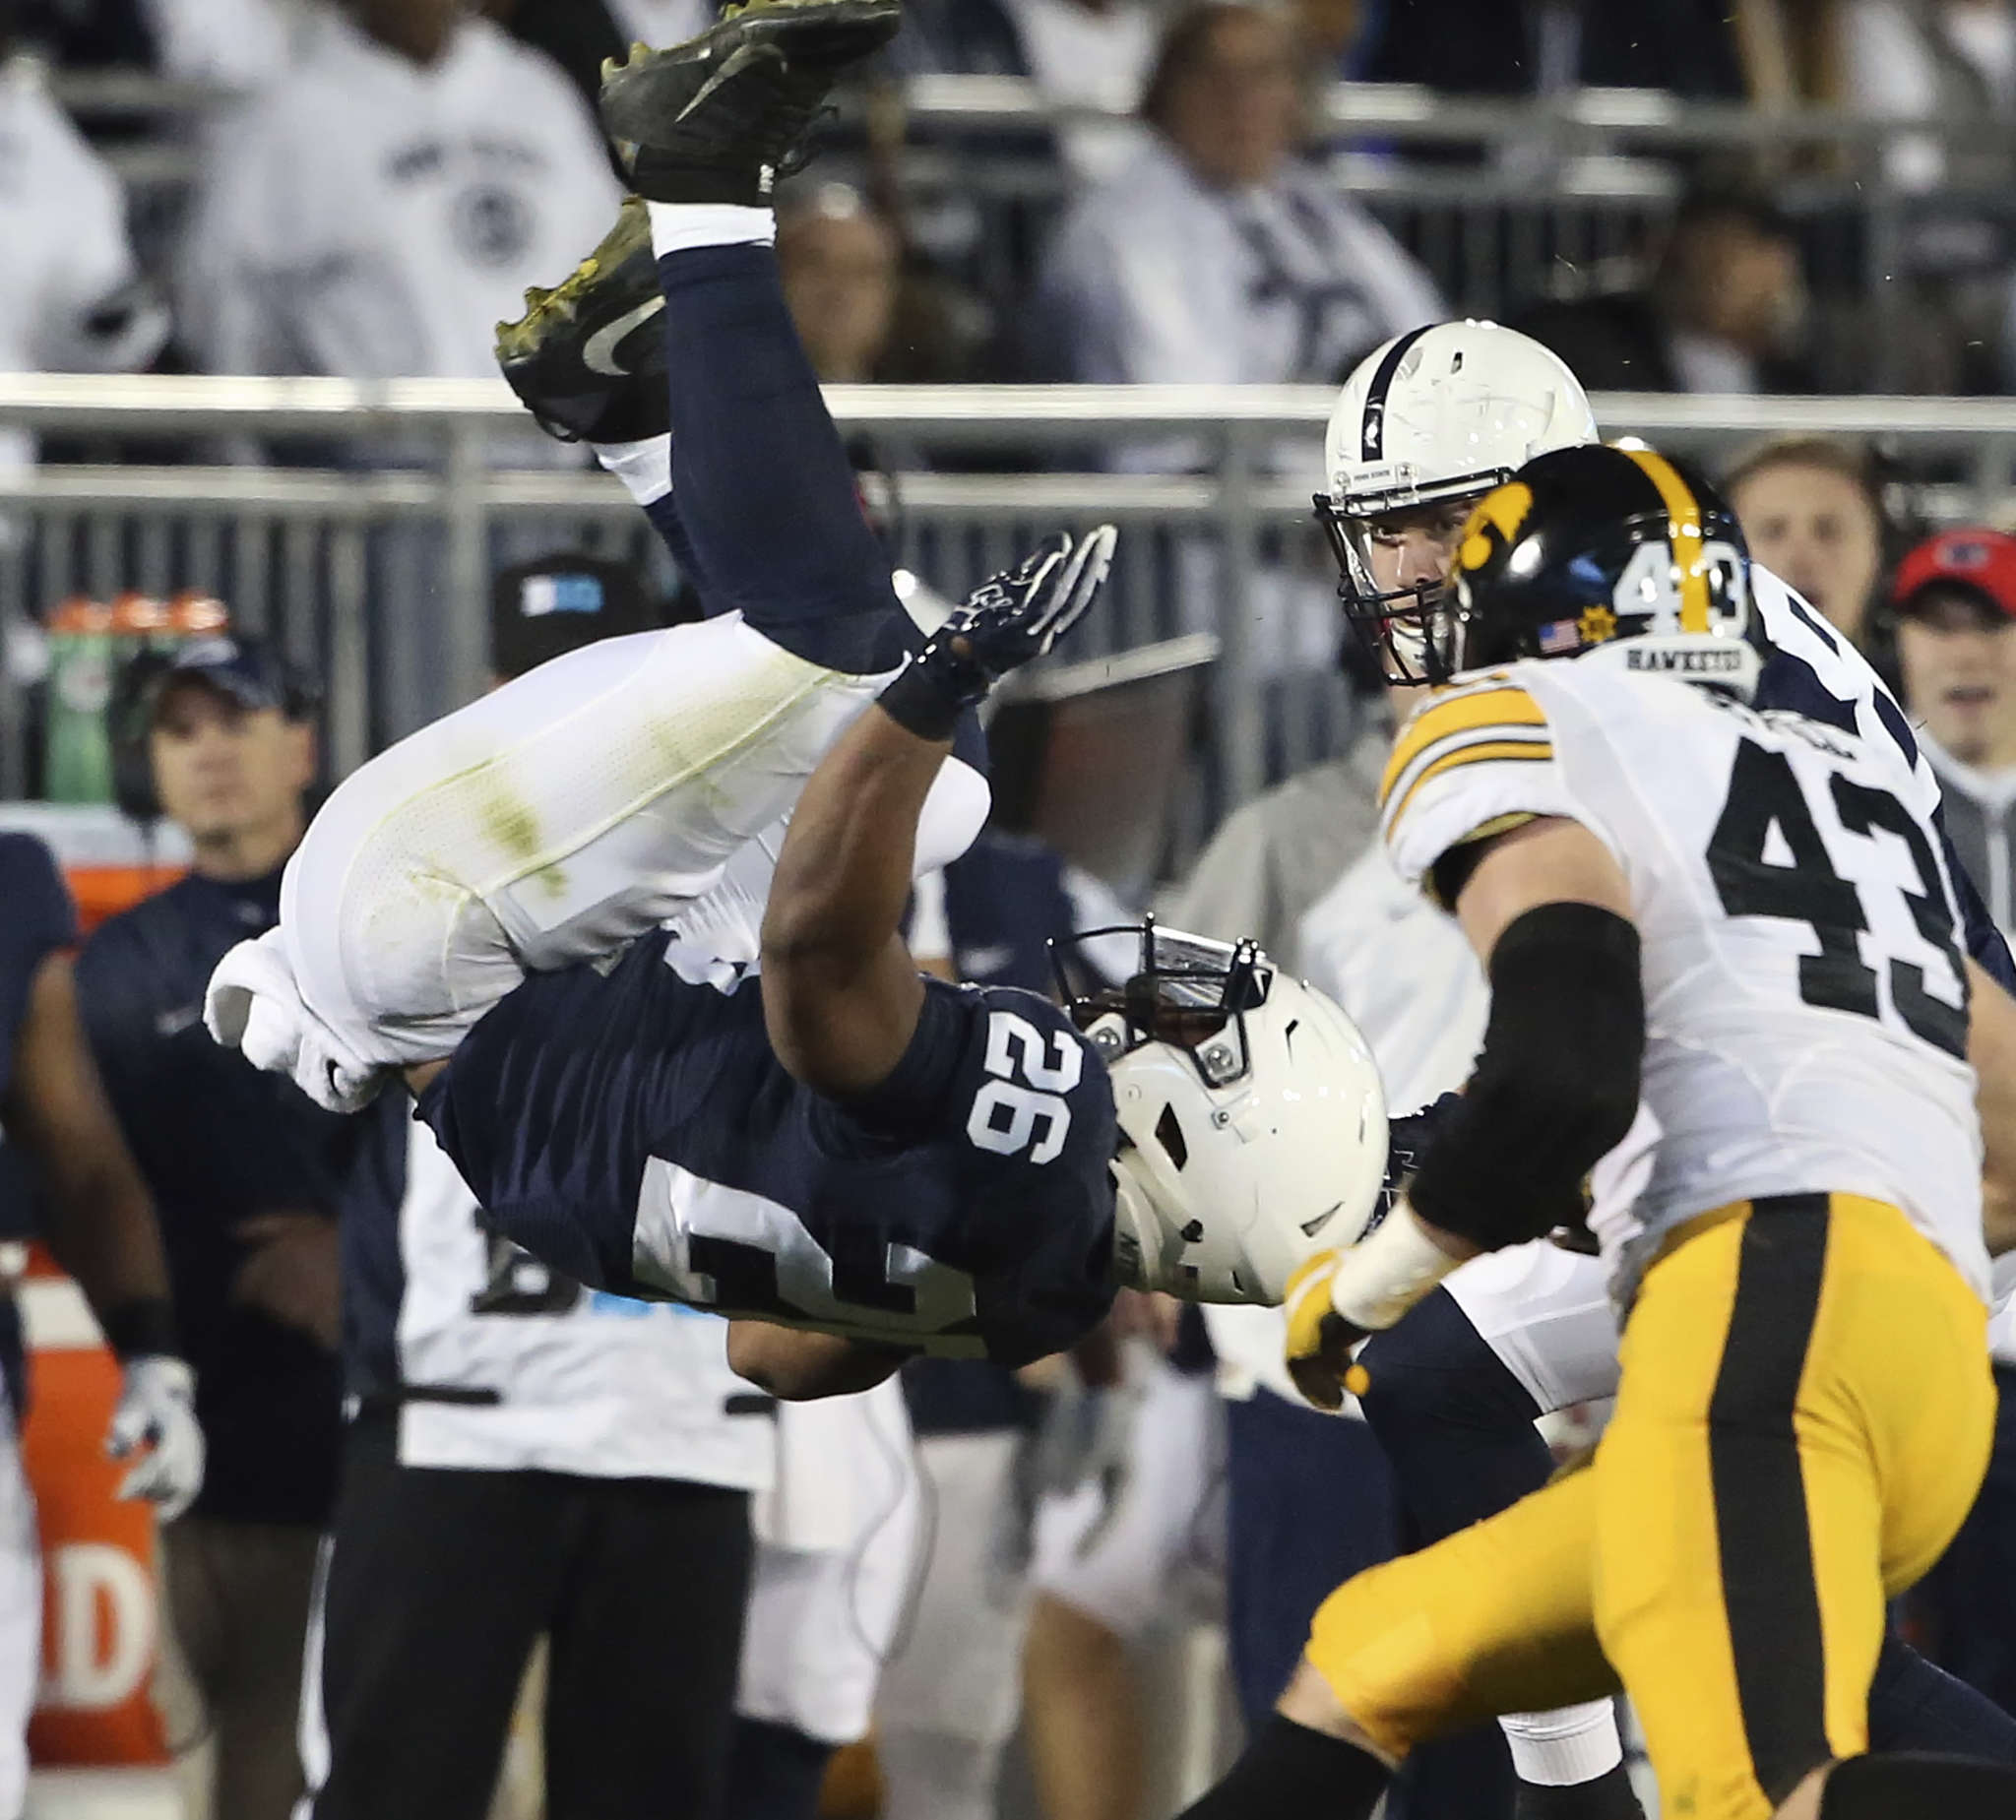 Penn State´s Saquon Barkley flips after being hit in Saturday night´s win over Iowa. ASSOCIATED PRESS